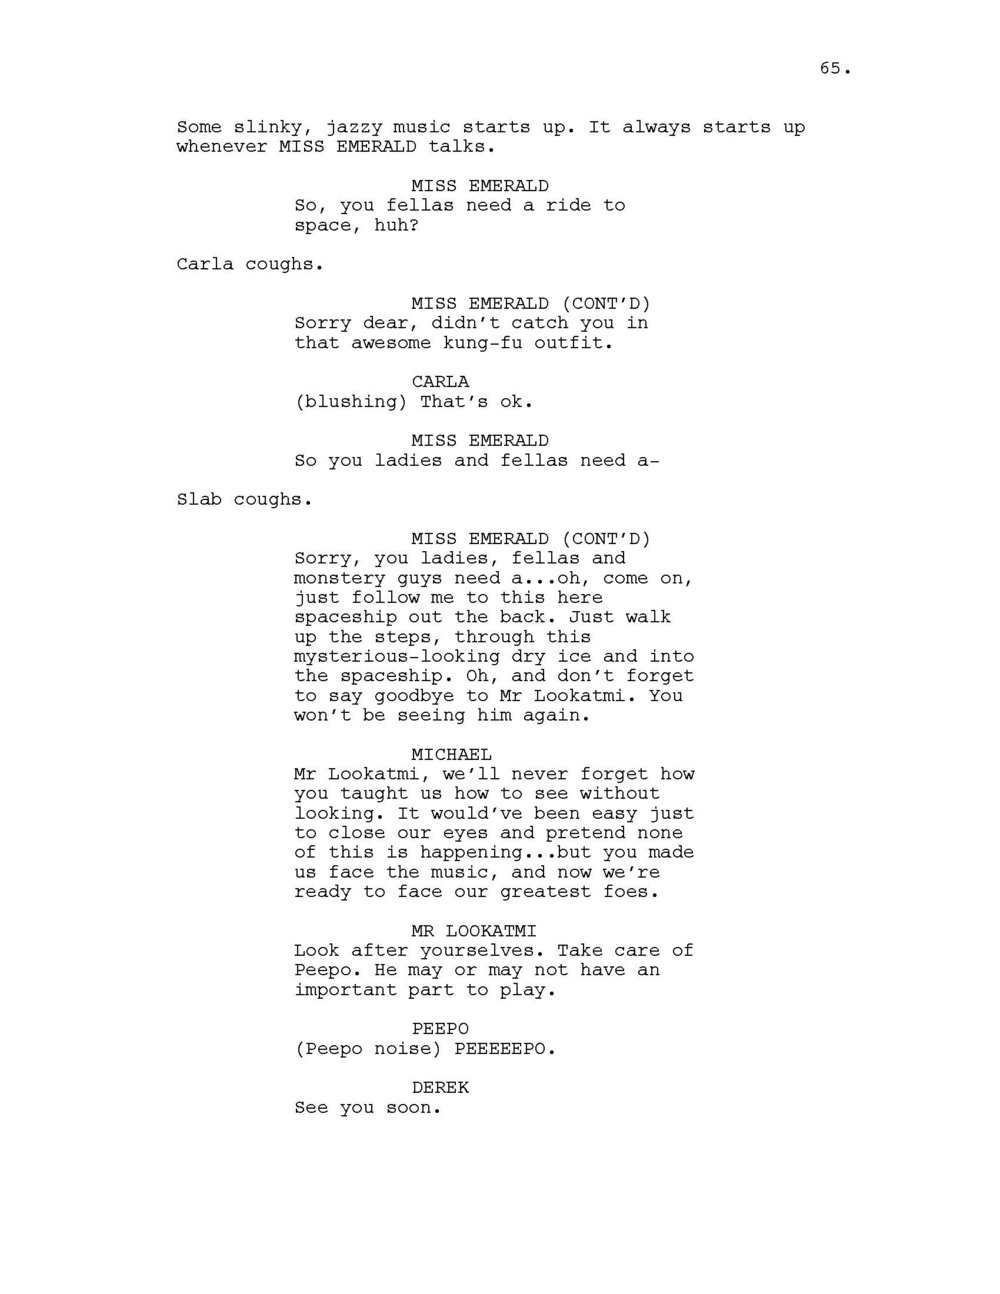 INVISIBLE WORLD SCRIPT_Page_066.jpg